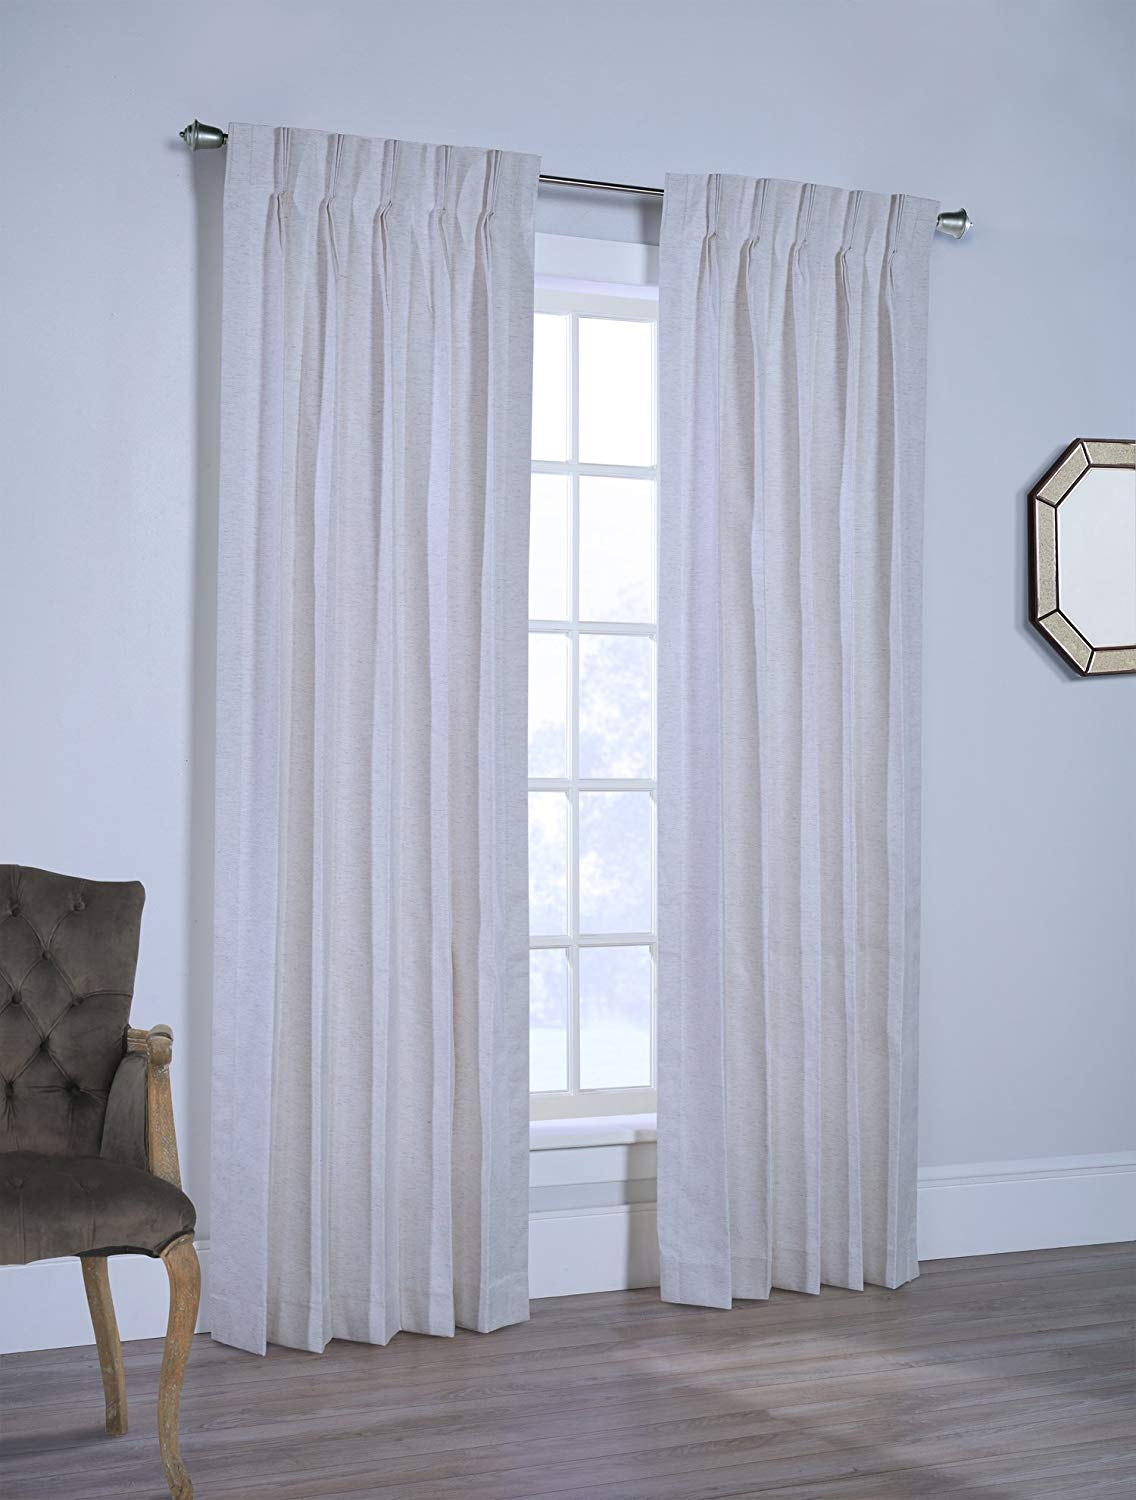 7. Rio Lined Pinch Pleated Drapes Ready To Hang with Curtain Hooks